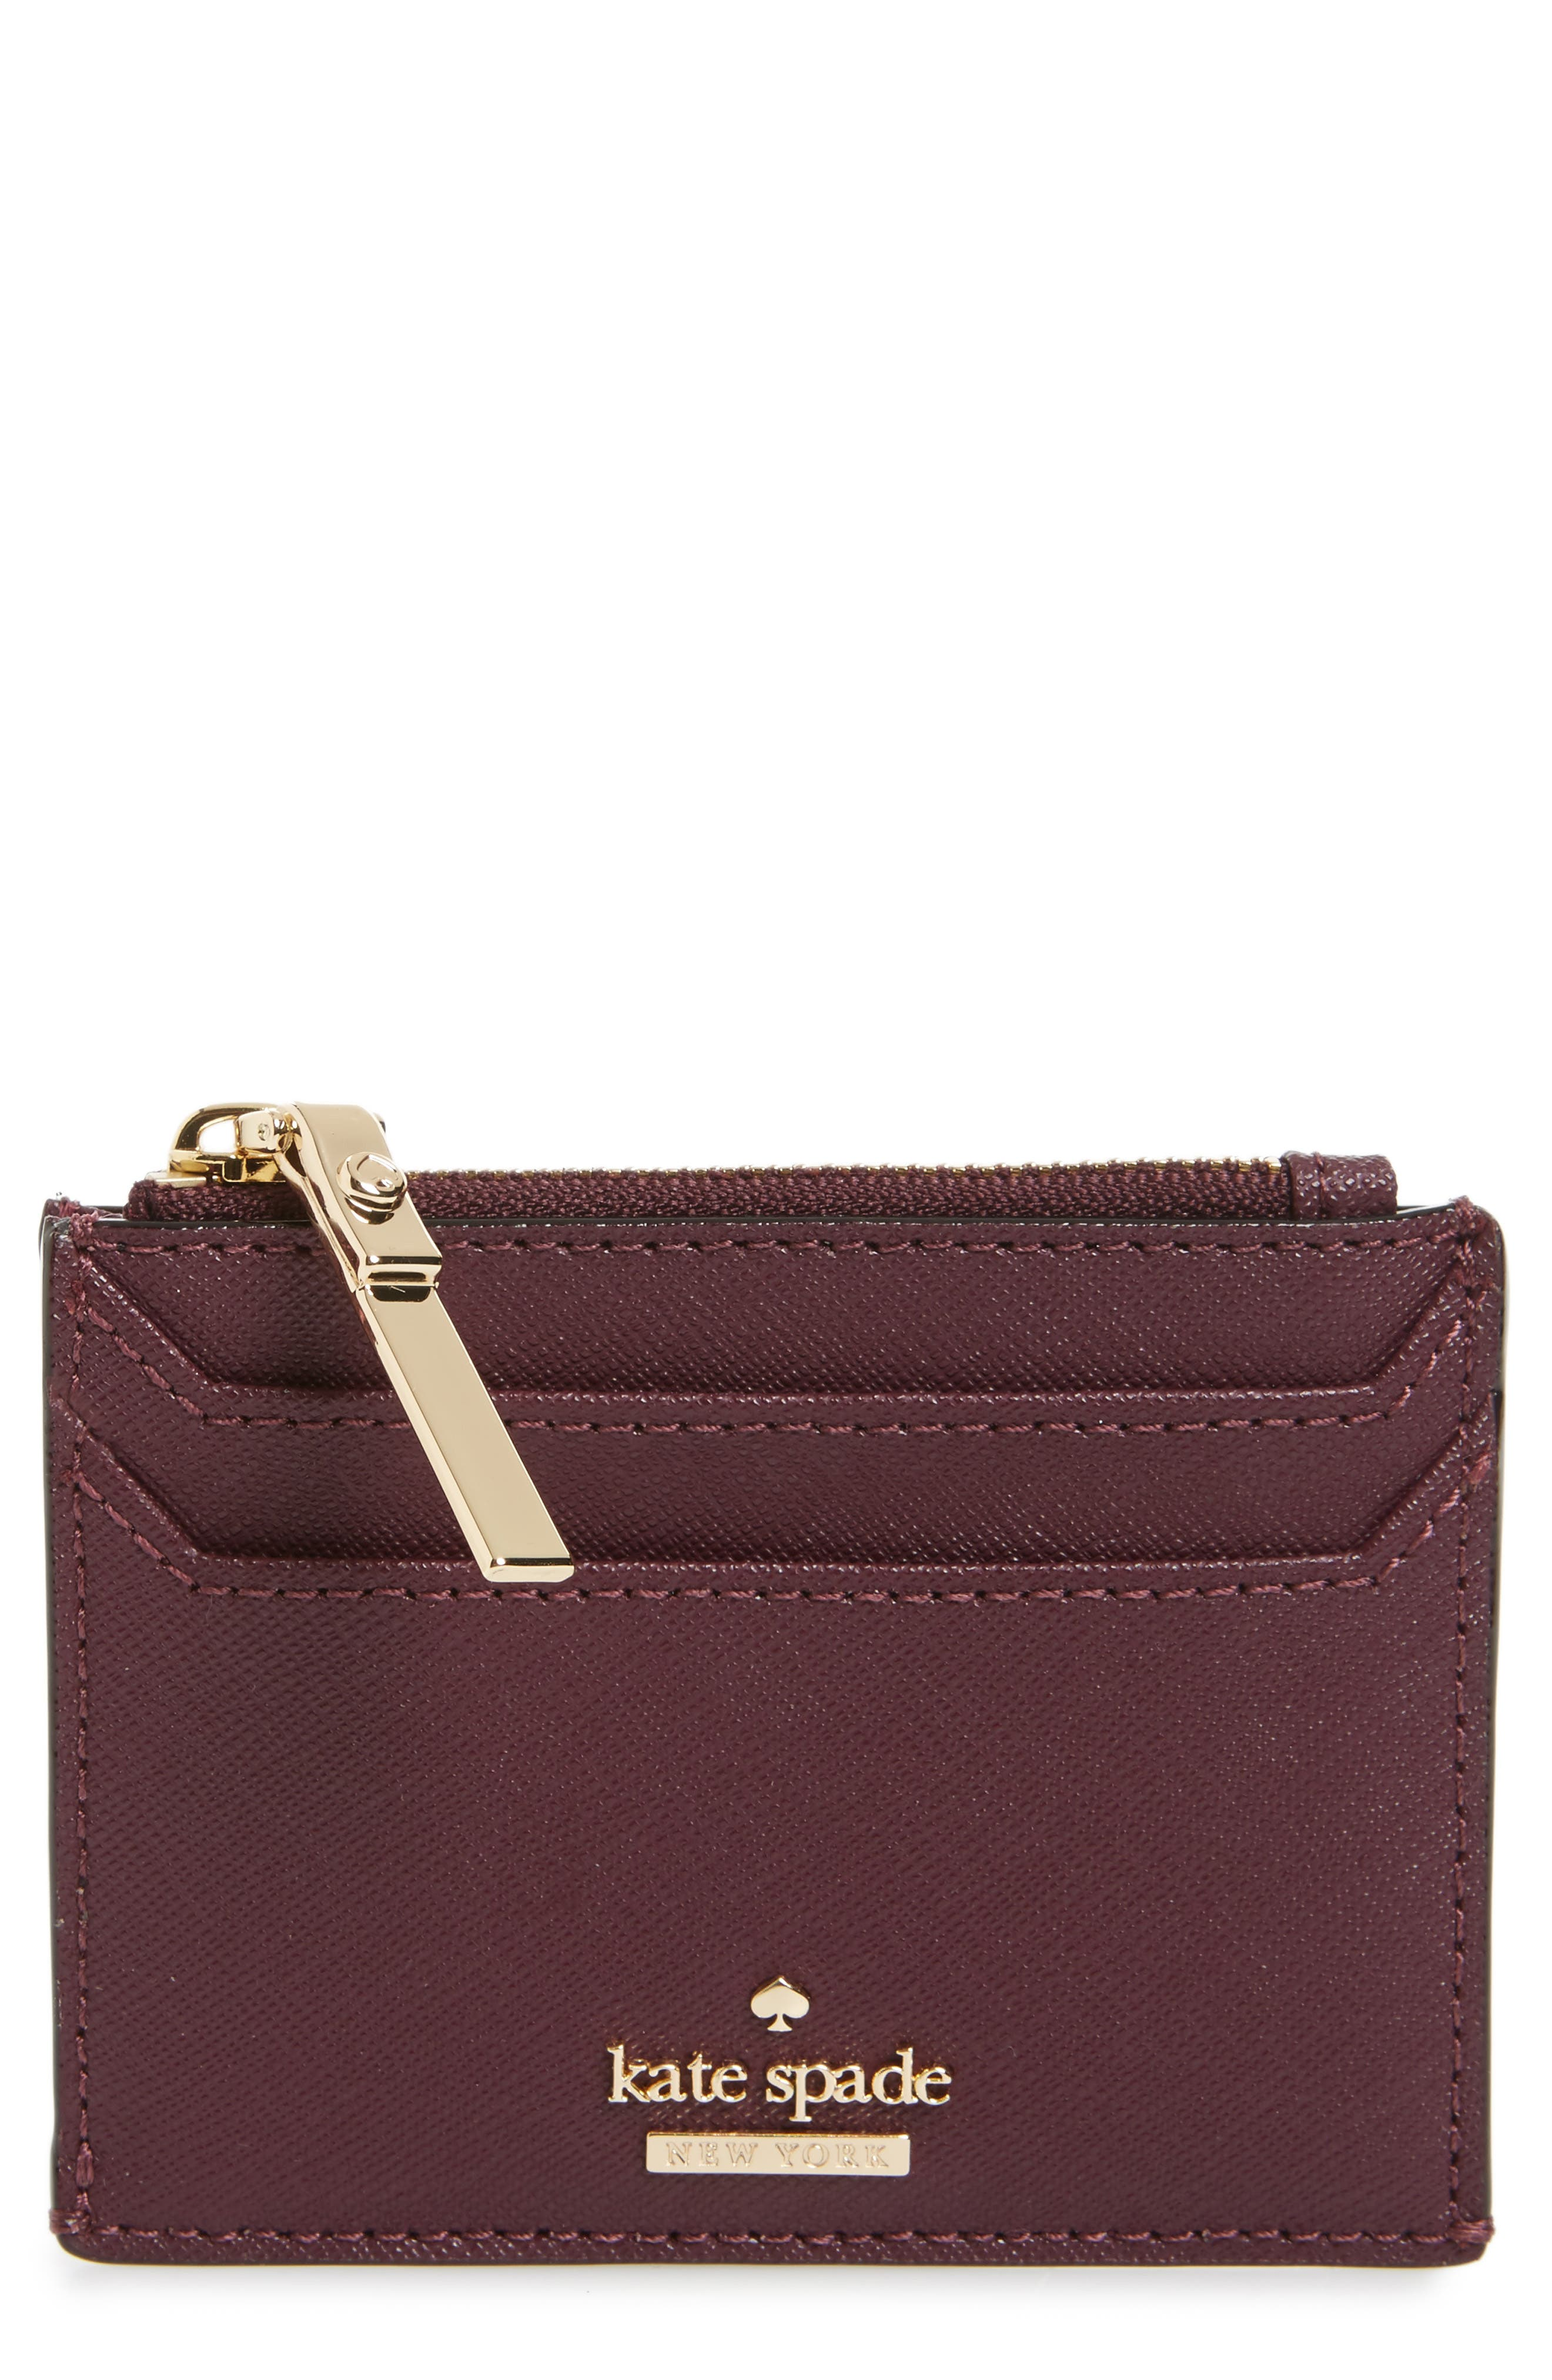 Main Image - kate spade new york cameron street - lalena leather card case